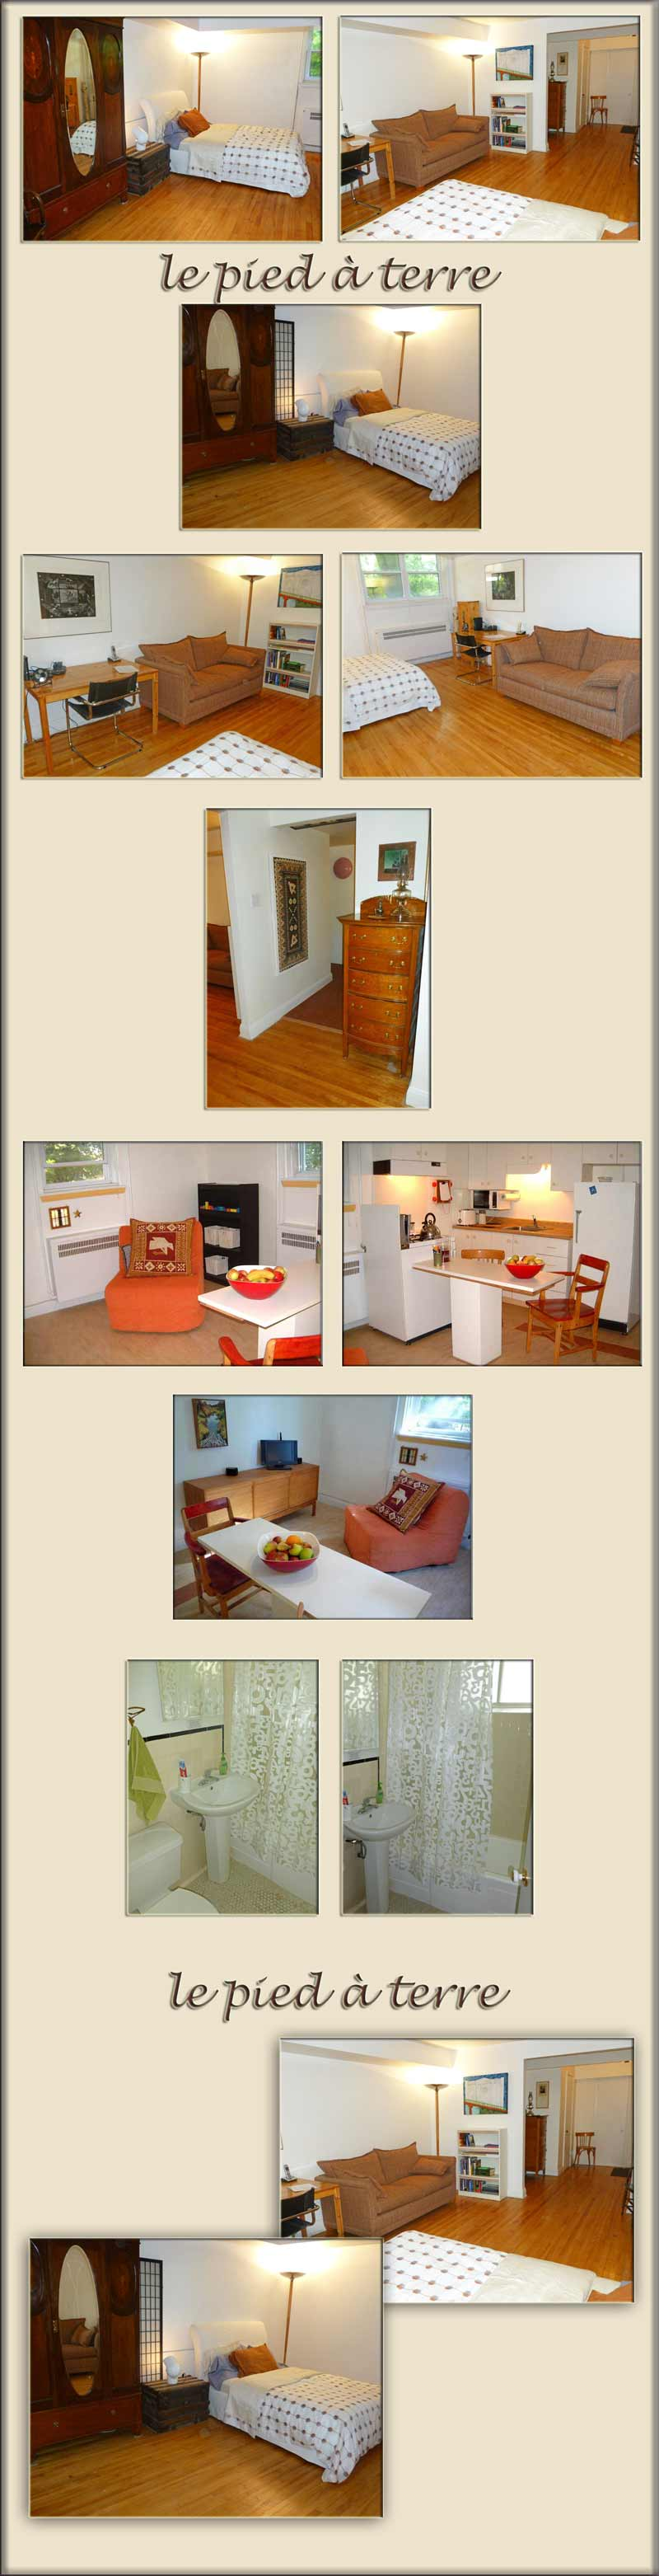 budget accommodation Montreal - large photos